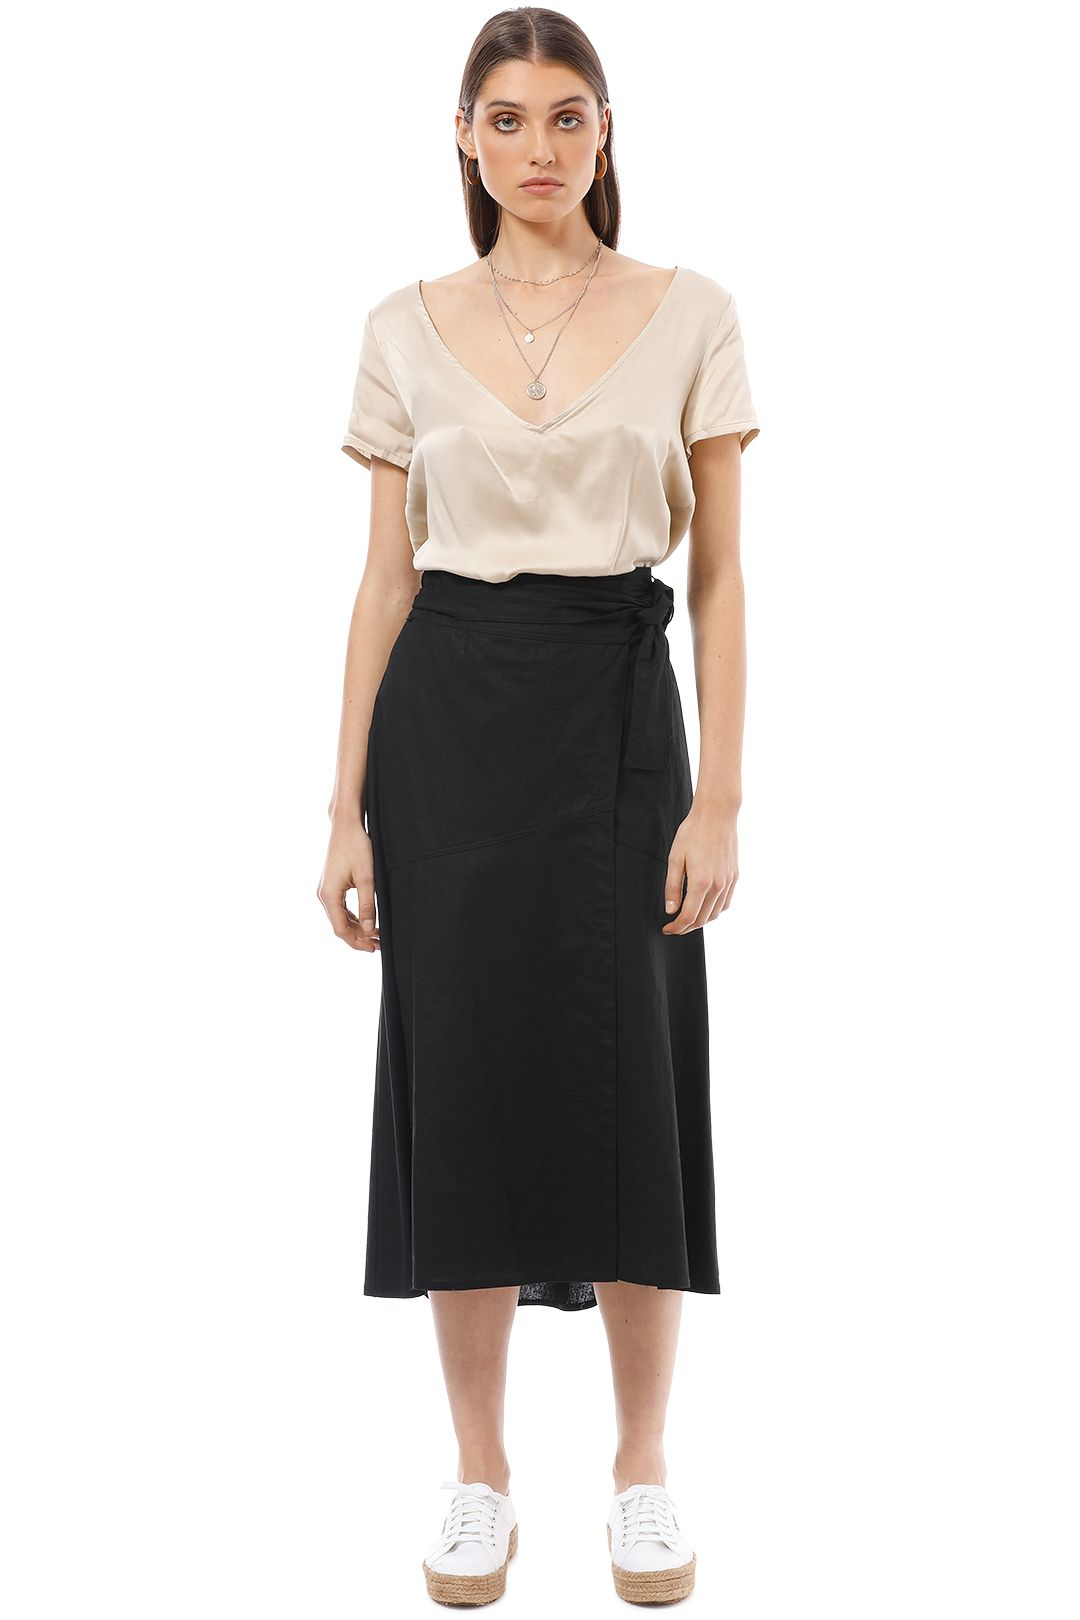 AKIN by Ginger and Smart - Grace Wrap Skirt - Black - Front